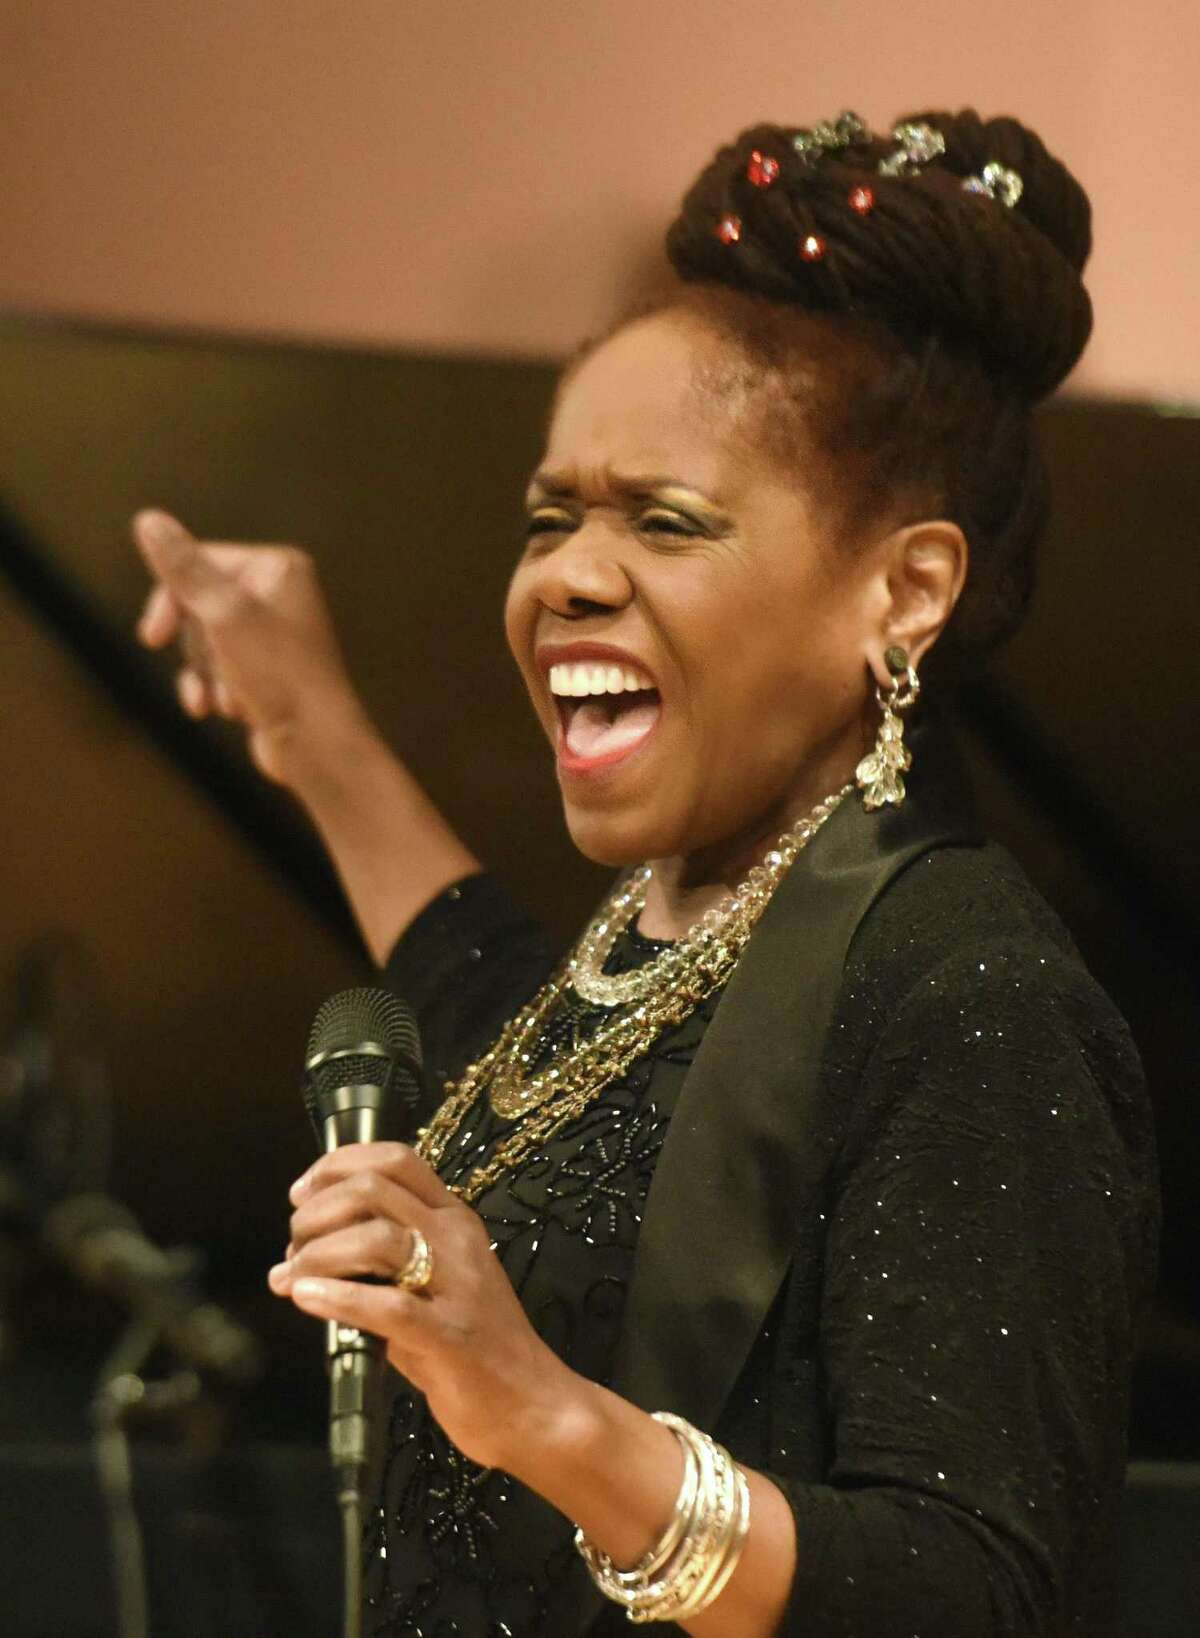 """Jazz singer Catherine Russell performs at Greenwich Library's Cole Auditorium in Greenwich, Conn. Sunday, Feb. 4, 2018. Russell, whose most recent album """"Harlem on My Mind"""" was nominated for Best Jazz Vocal at the 2017 Grammy's, entertained a packed house with a lively set."""